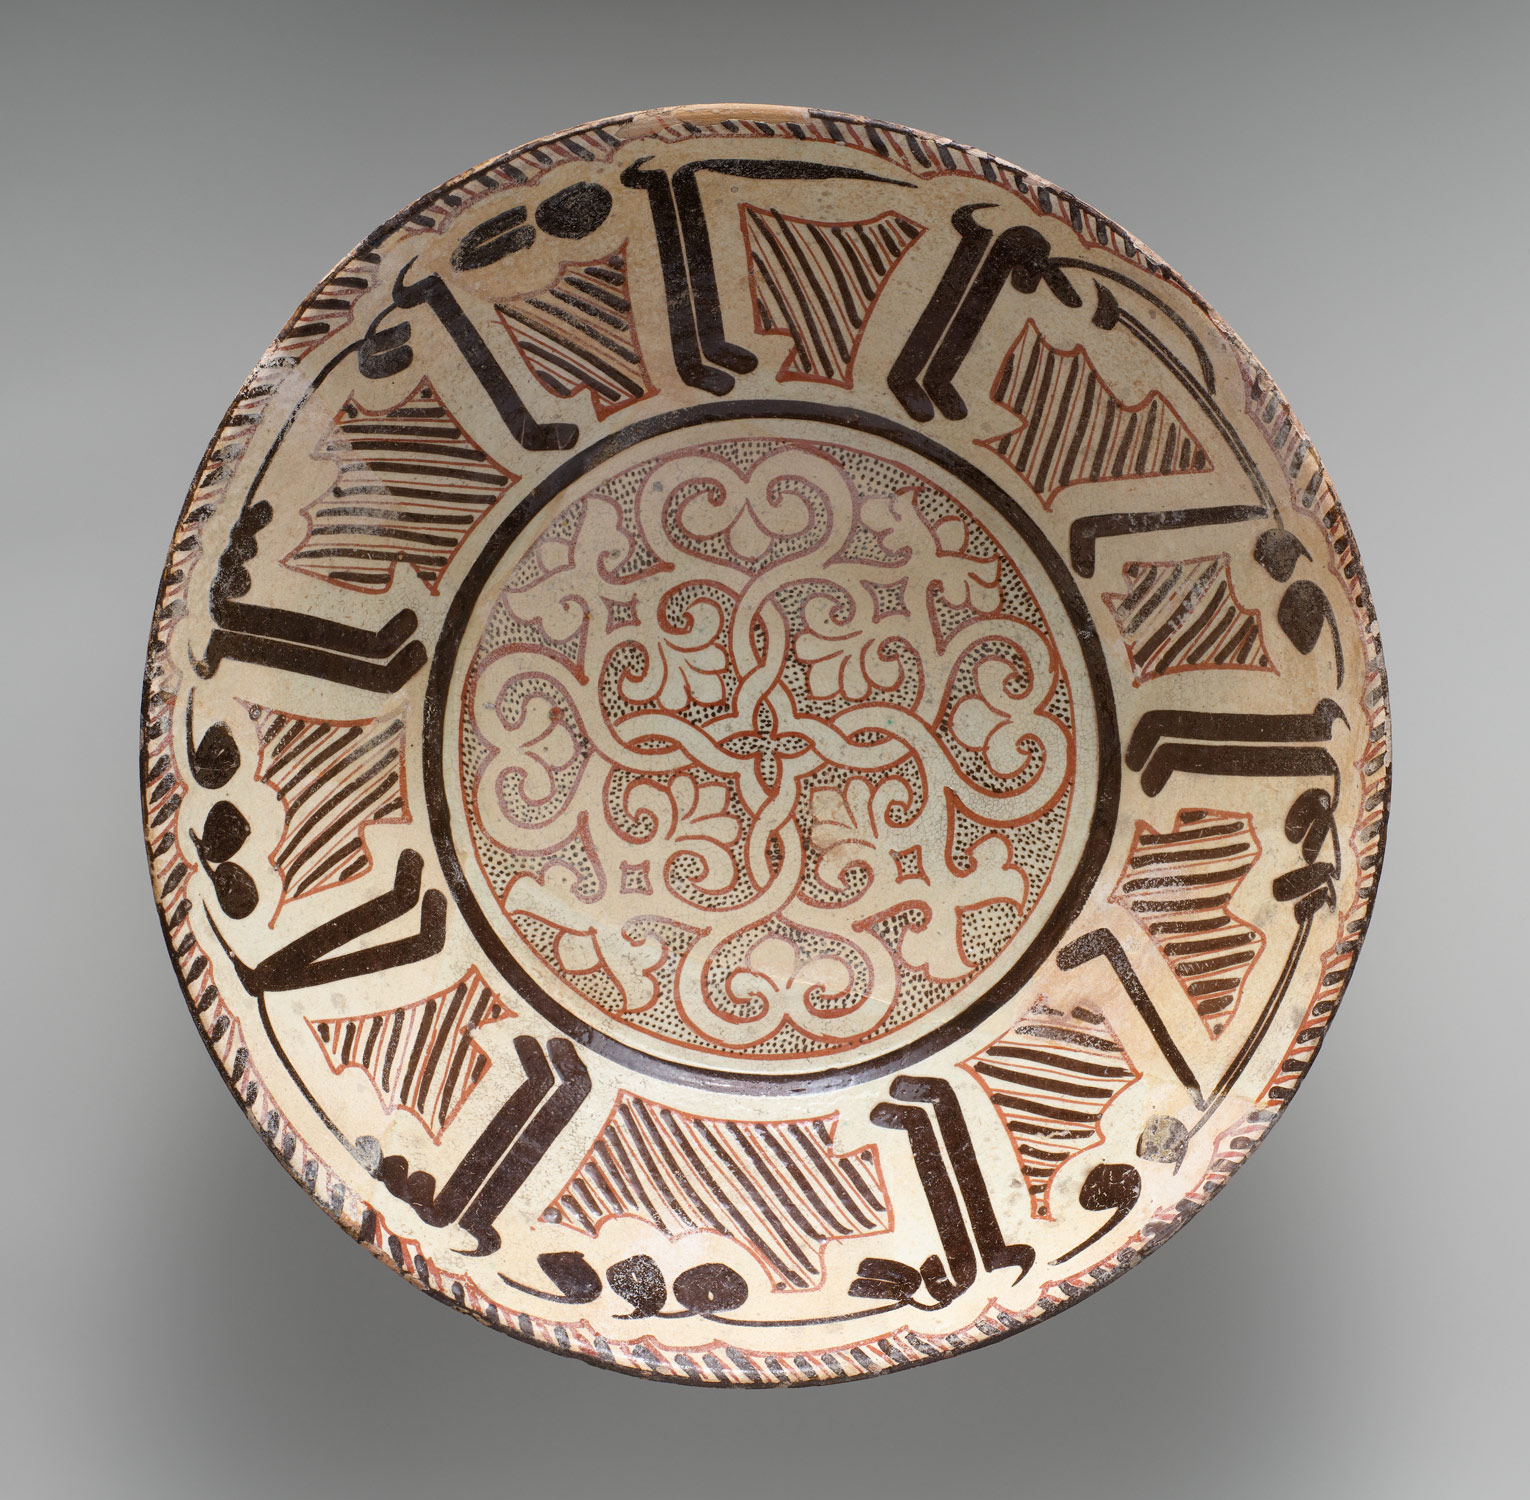 Bowl with Arabic Inscription, Blessing, Prosperity, Well-being, Happiness